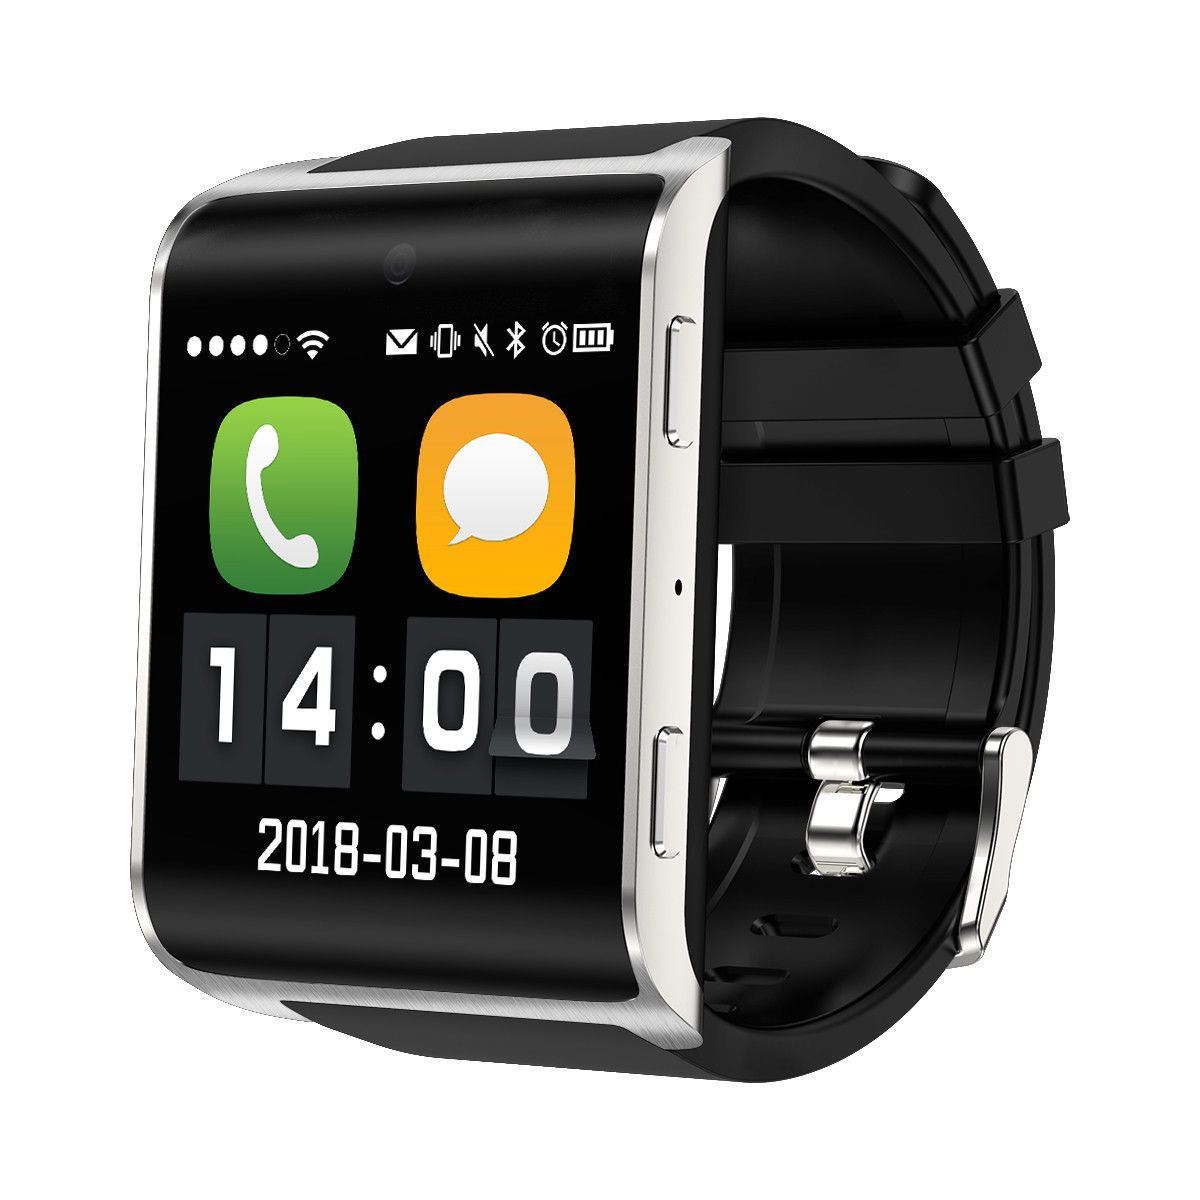 a94387ee84a2 DM2018 4G Smart Watch Phone WIFI GPS Video Call SOS Pedometer Android  Smartwatch (eBay Link)